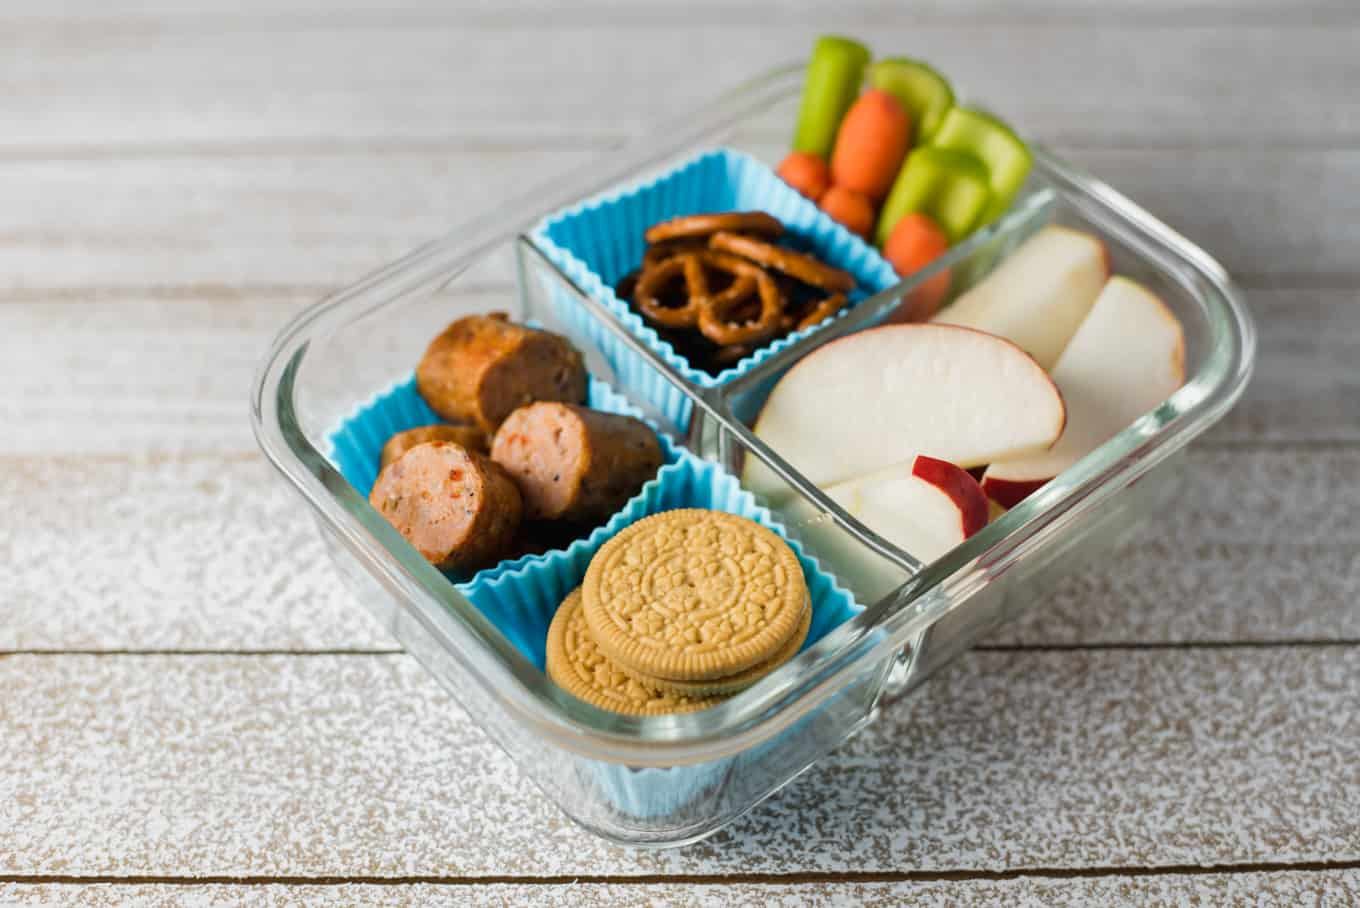 A glass bento box container of cookies, sausage bites, pretzels, apple slices, and veggie sticks.